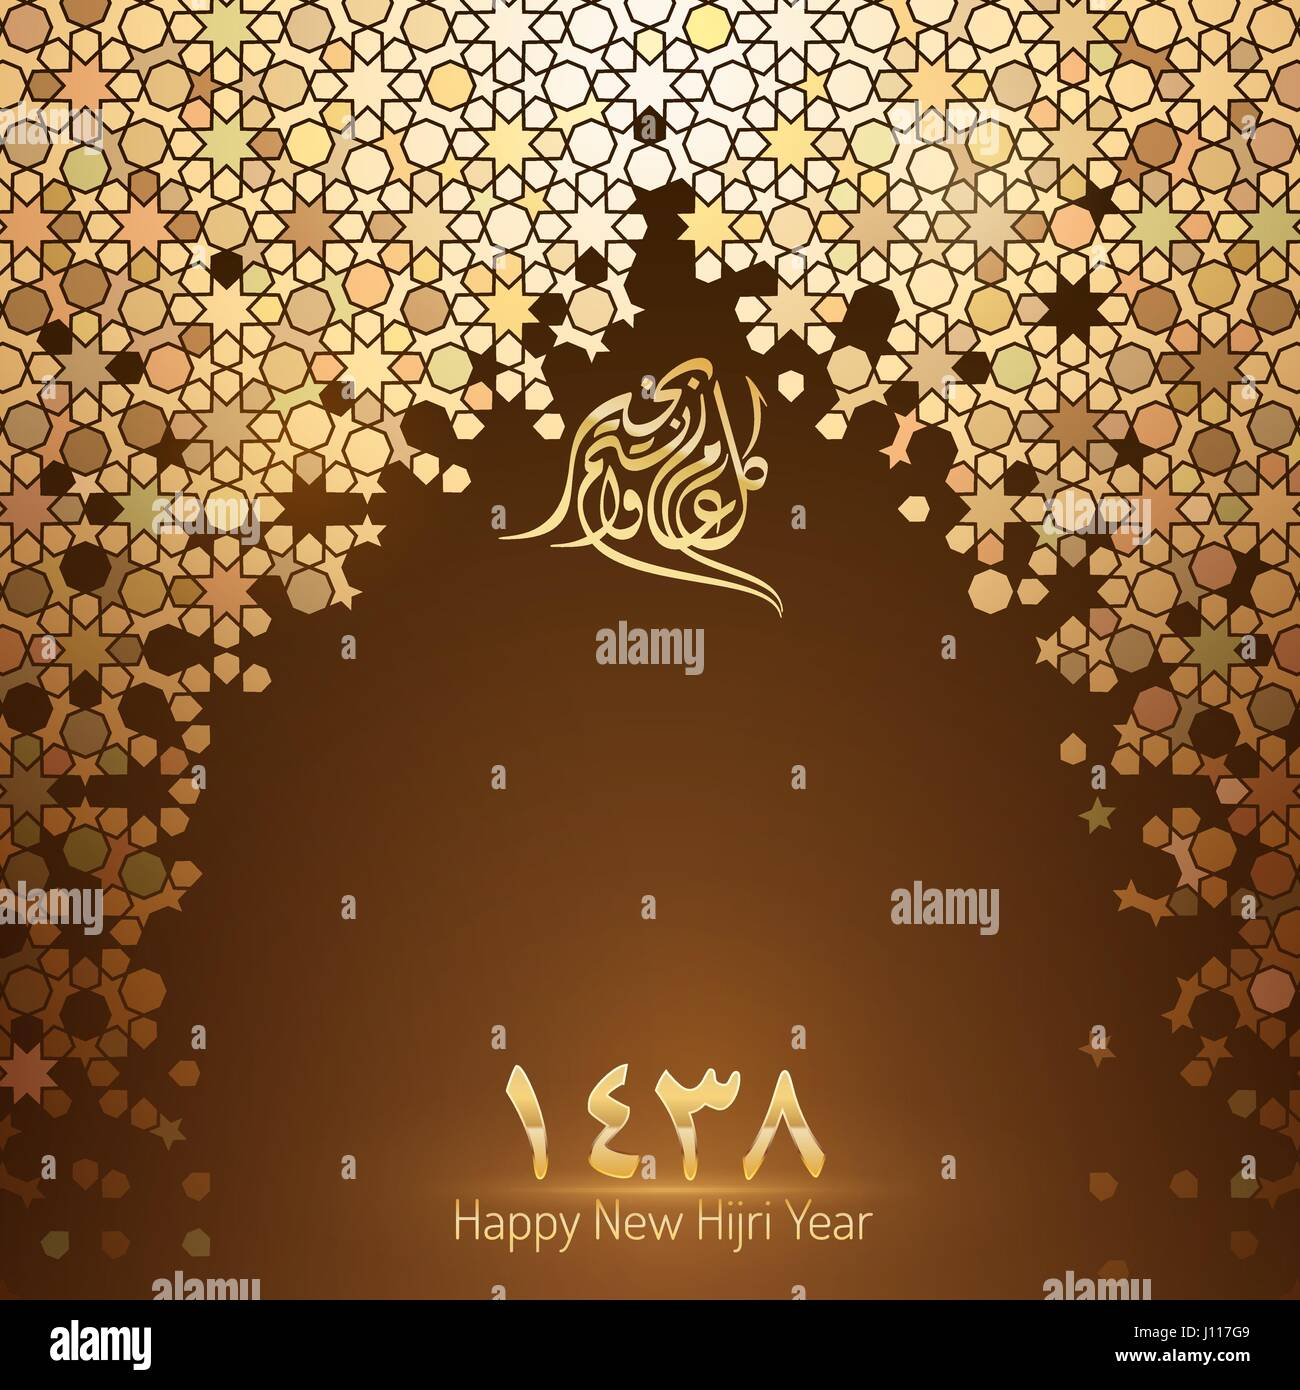 islamic new hijri year 1438 vector greeting card template stock image